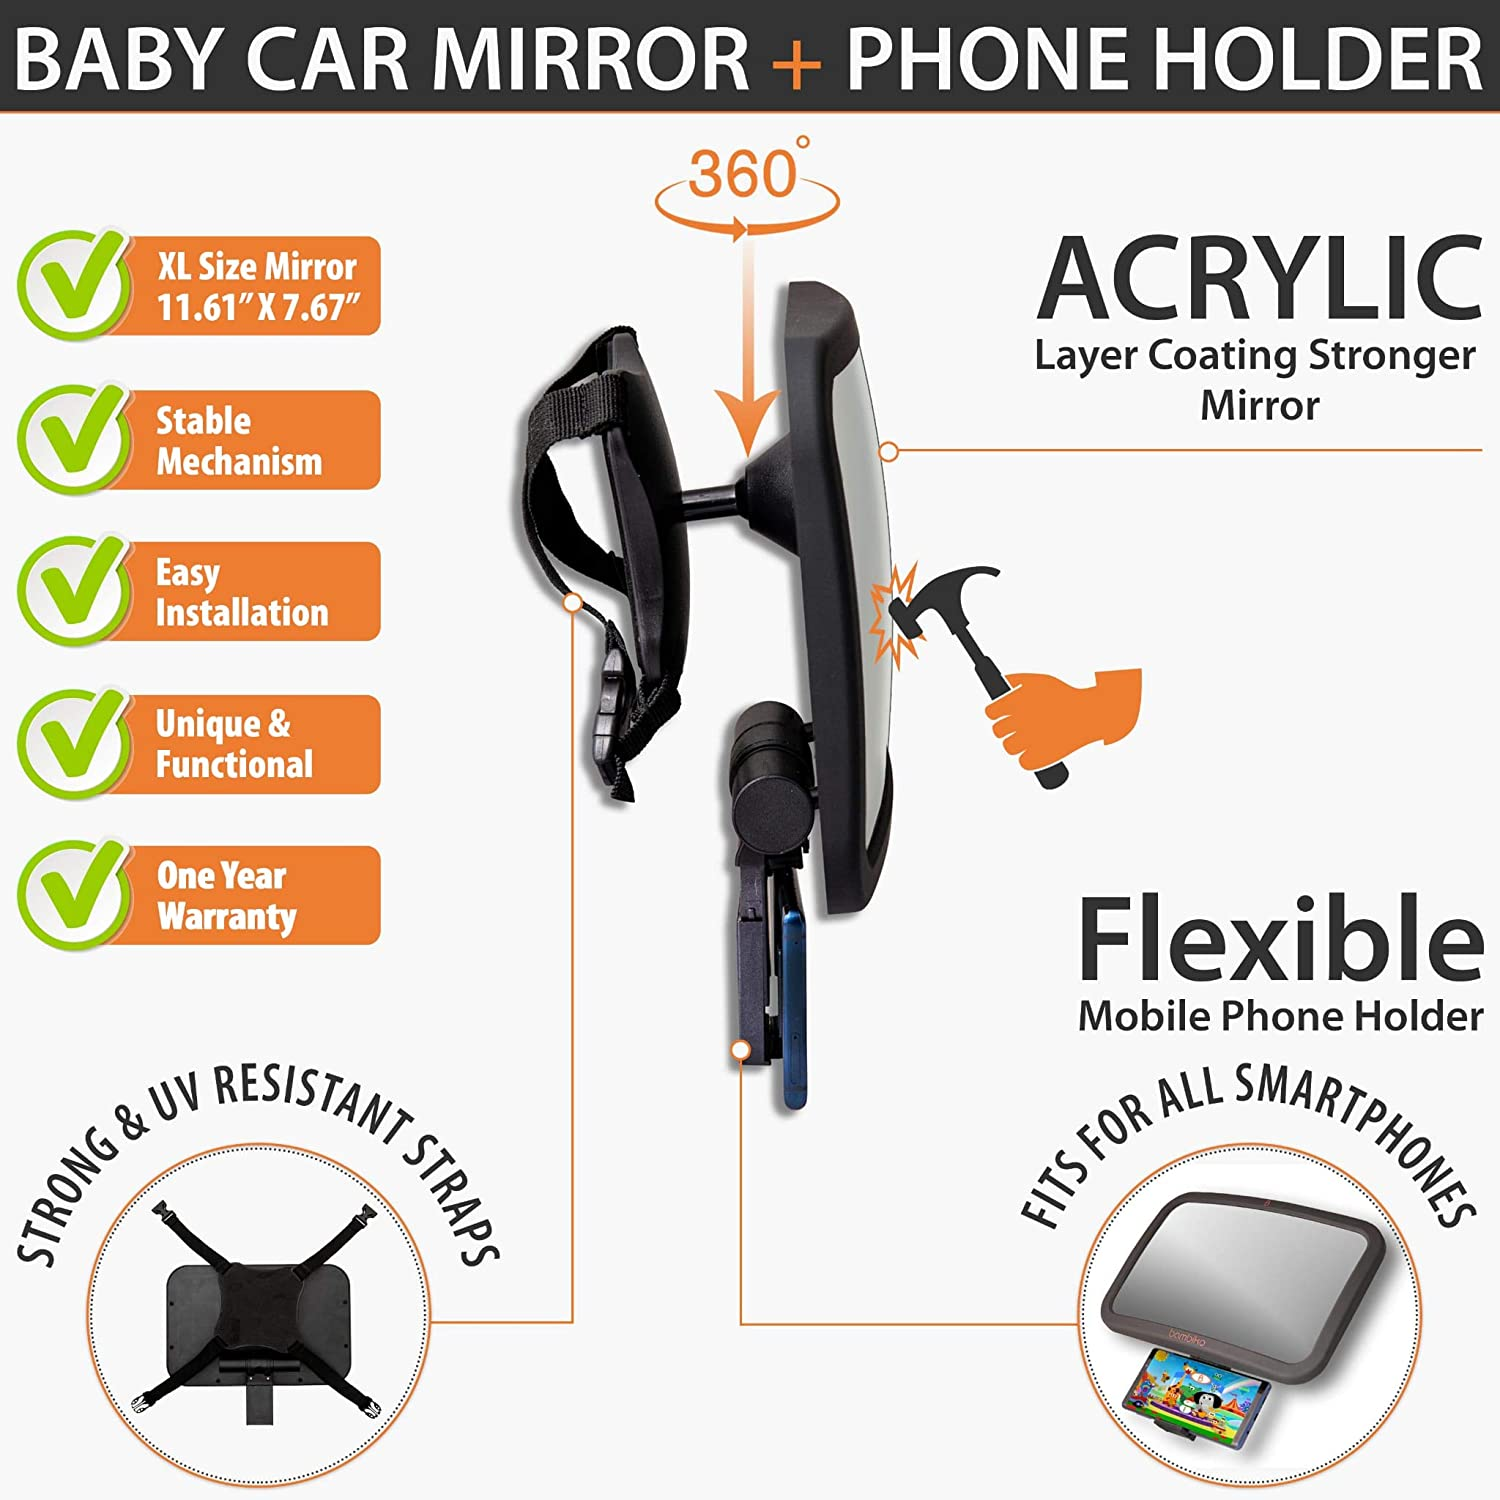 Safety Monitor for Fixed Headrest Backseat Bambiko Baby Car Mirror with Phone Holder set pack LARGE size Rear Wide View Stable Infant interior mirror Compatible For all SmartPhones,360/° Adjustable